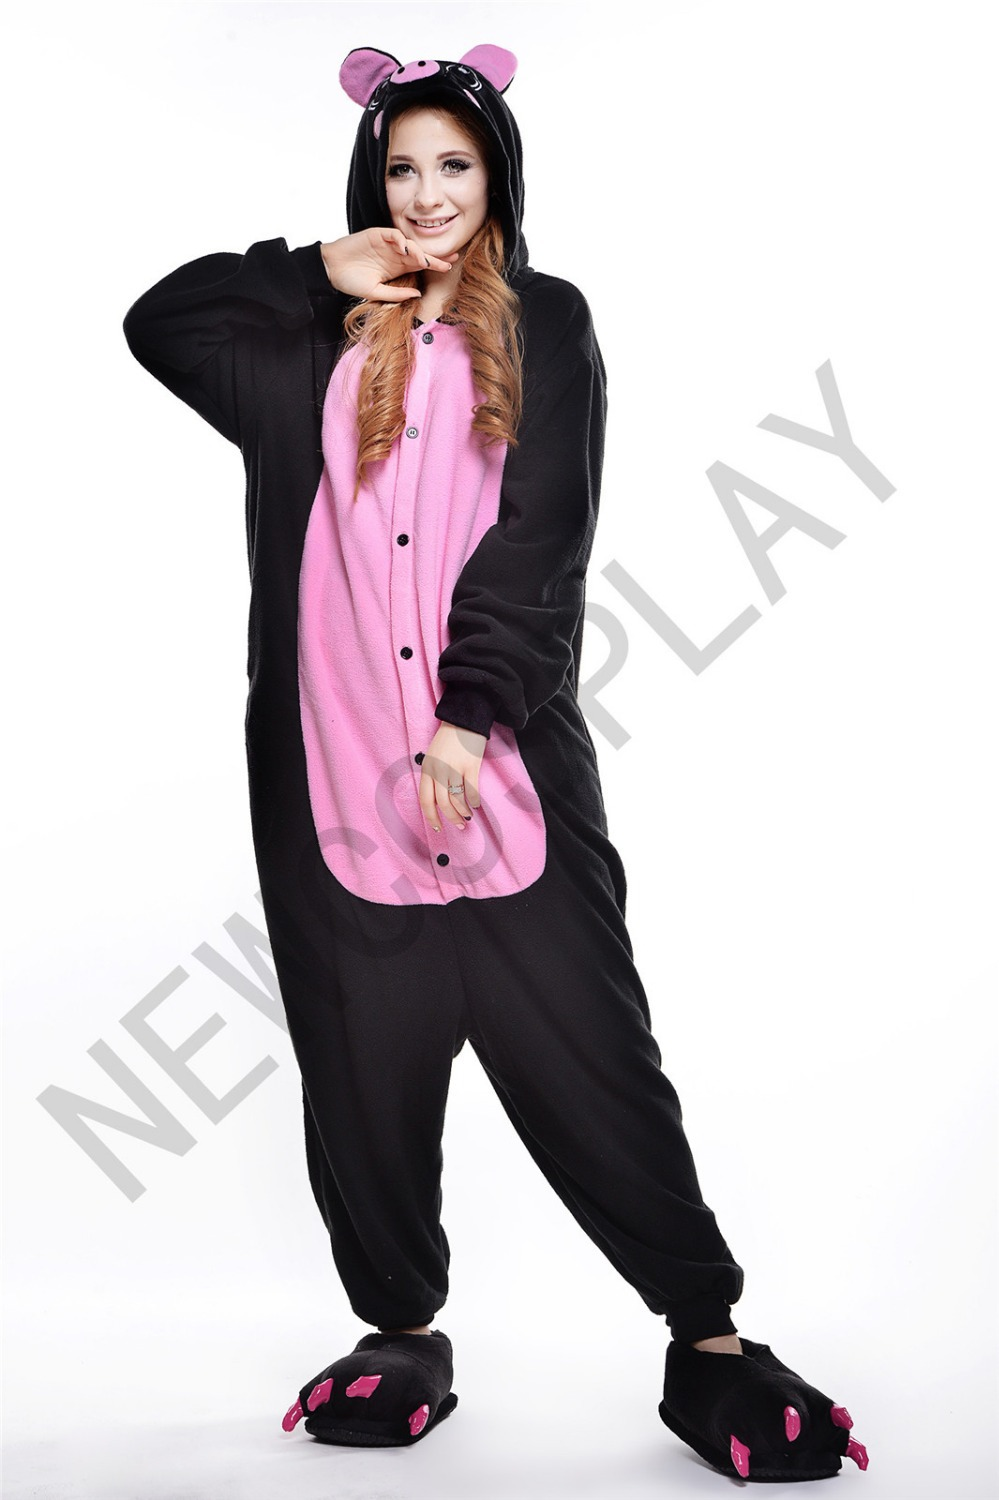 31a8a9c347 Get Quotations · Black Pig Party fleece pajamas Sleepwear Cosplay Adult  Unisex Cartoon Costumes Pajamas